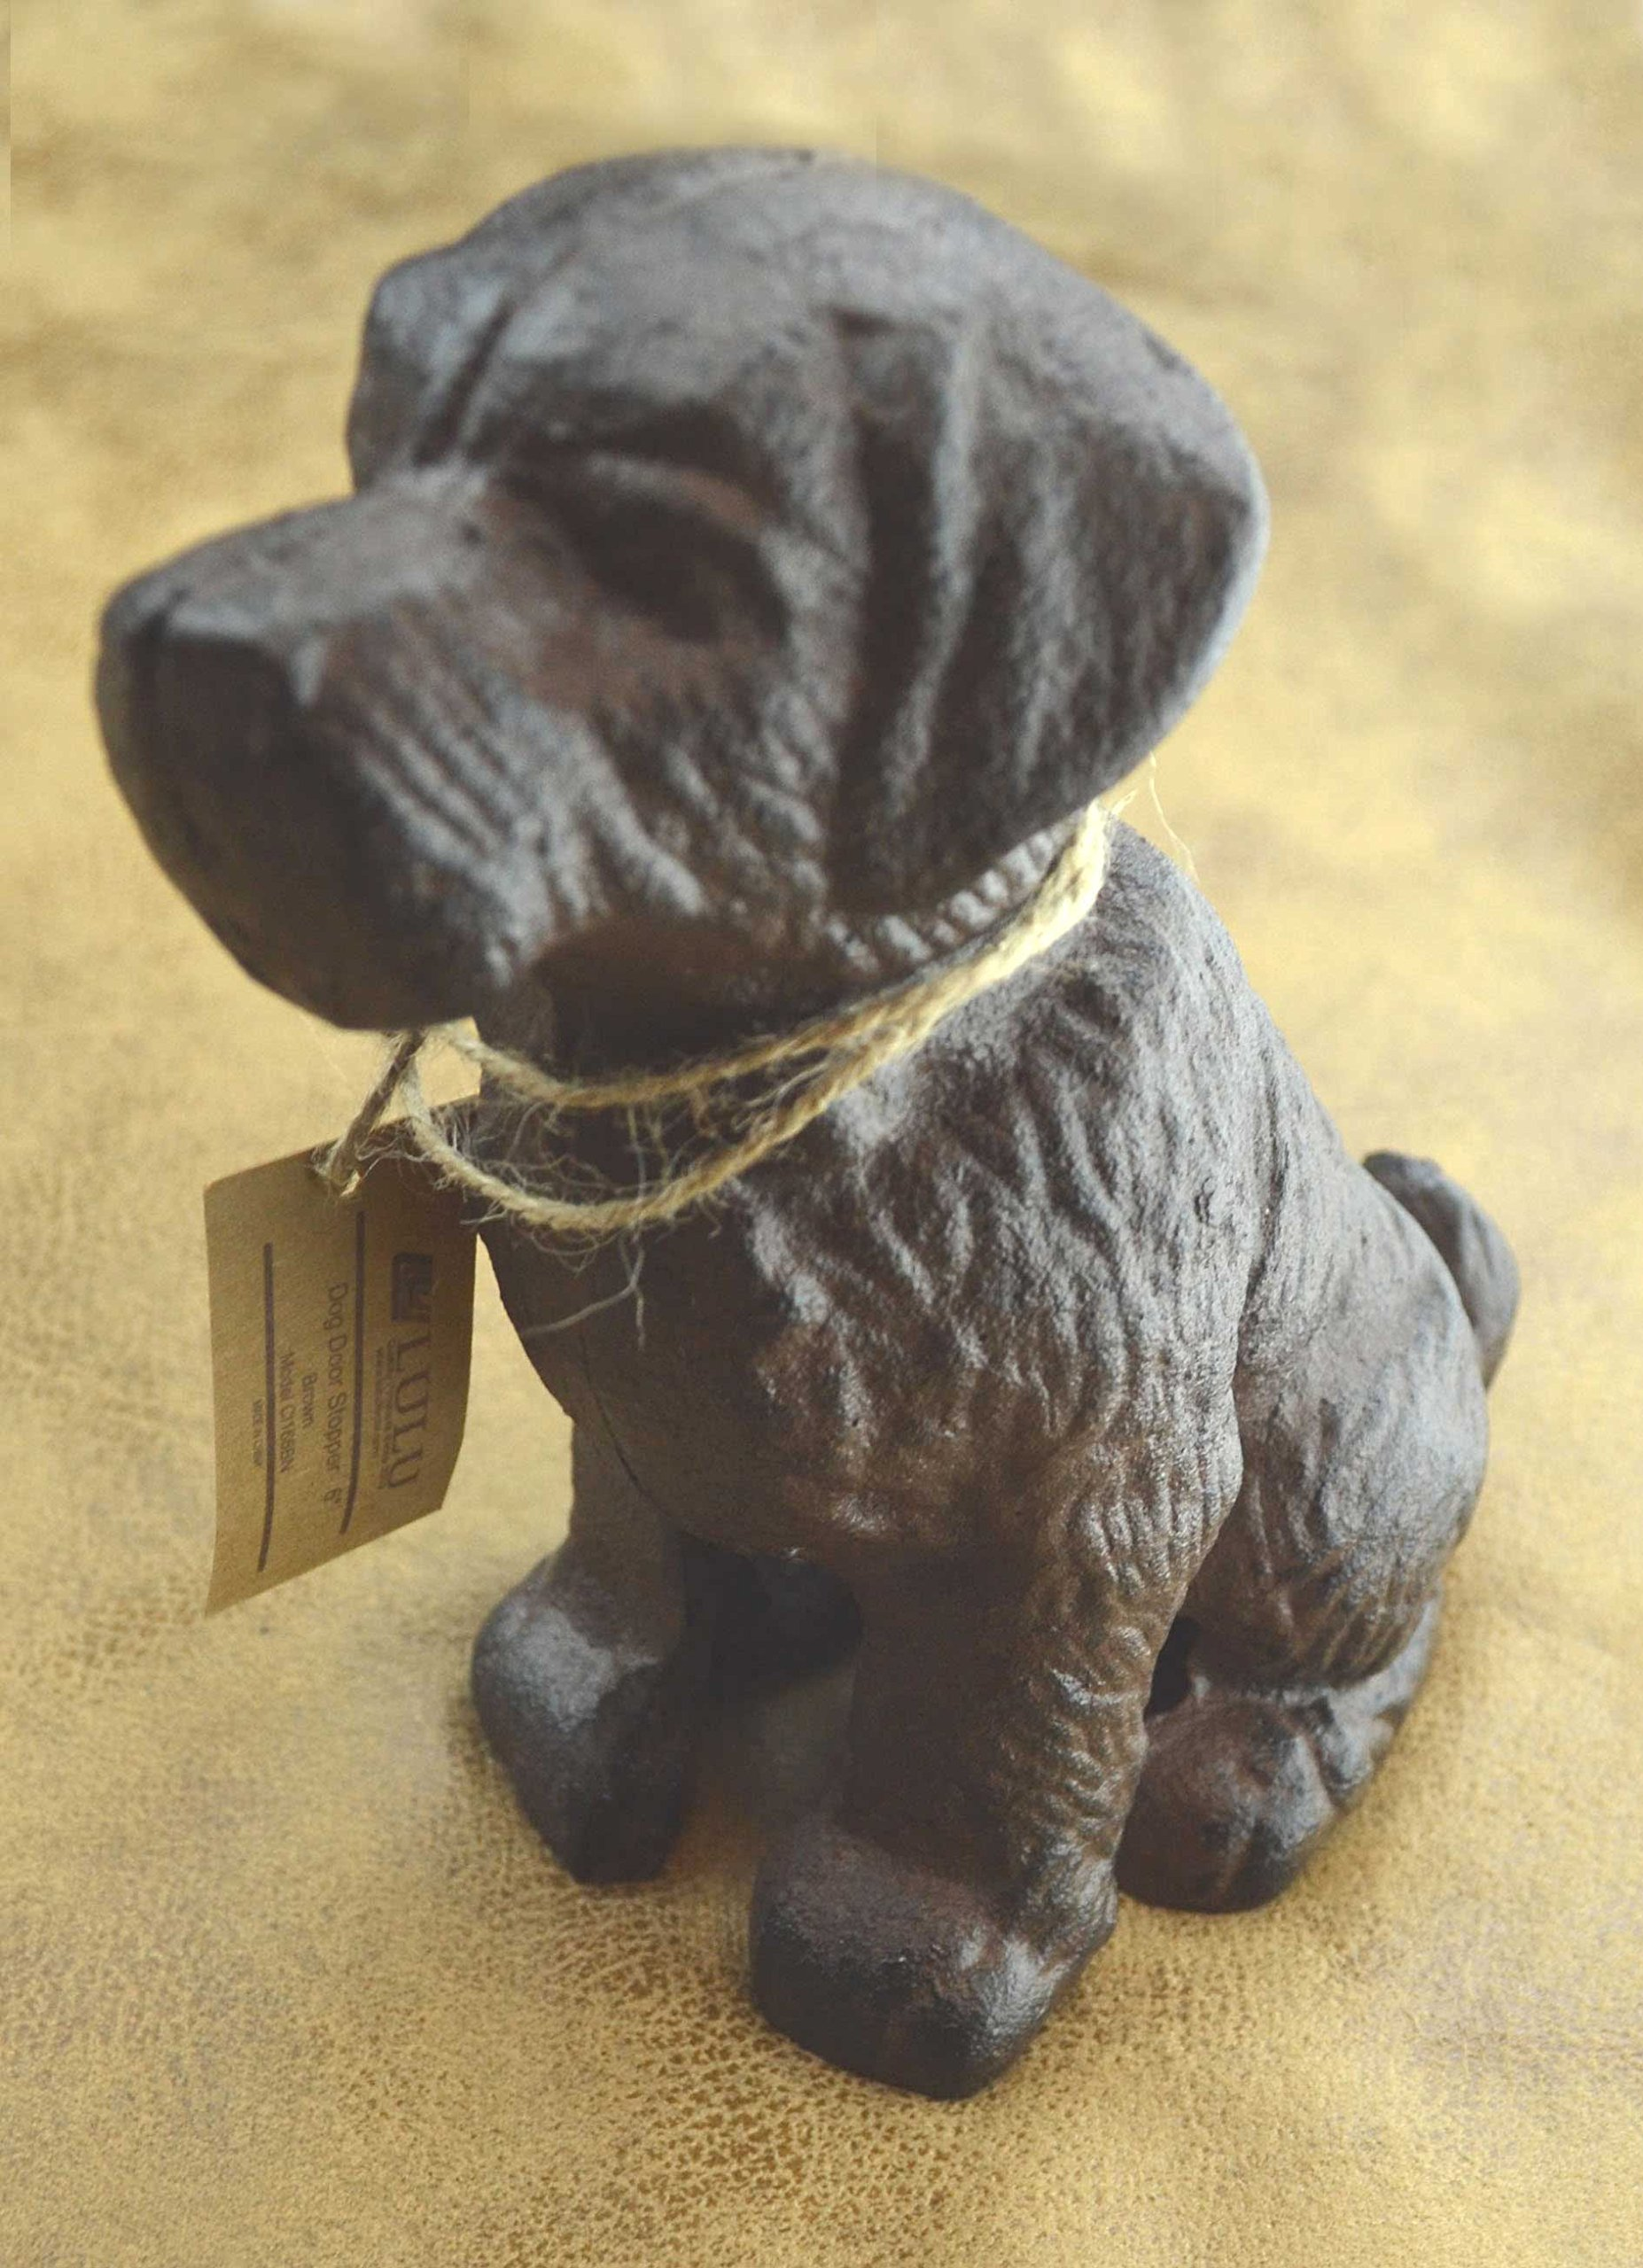 LuLu Decor, 100% Cast Iron Dog Door Stopper, Doorstop, Sculpture, Dog Statue, 6'' Height, Weighs 4.50 lb, Antique Brown (Brown 4.50 lb) by Lulu Decor (Image #2)